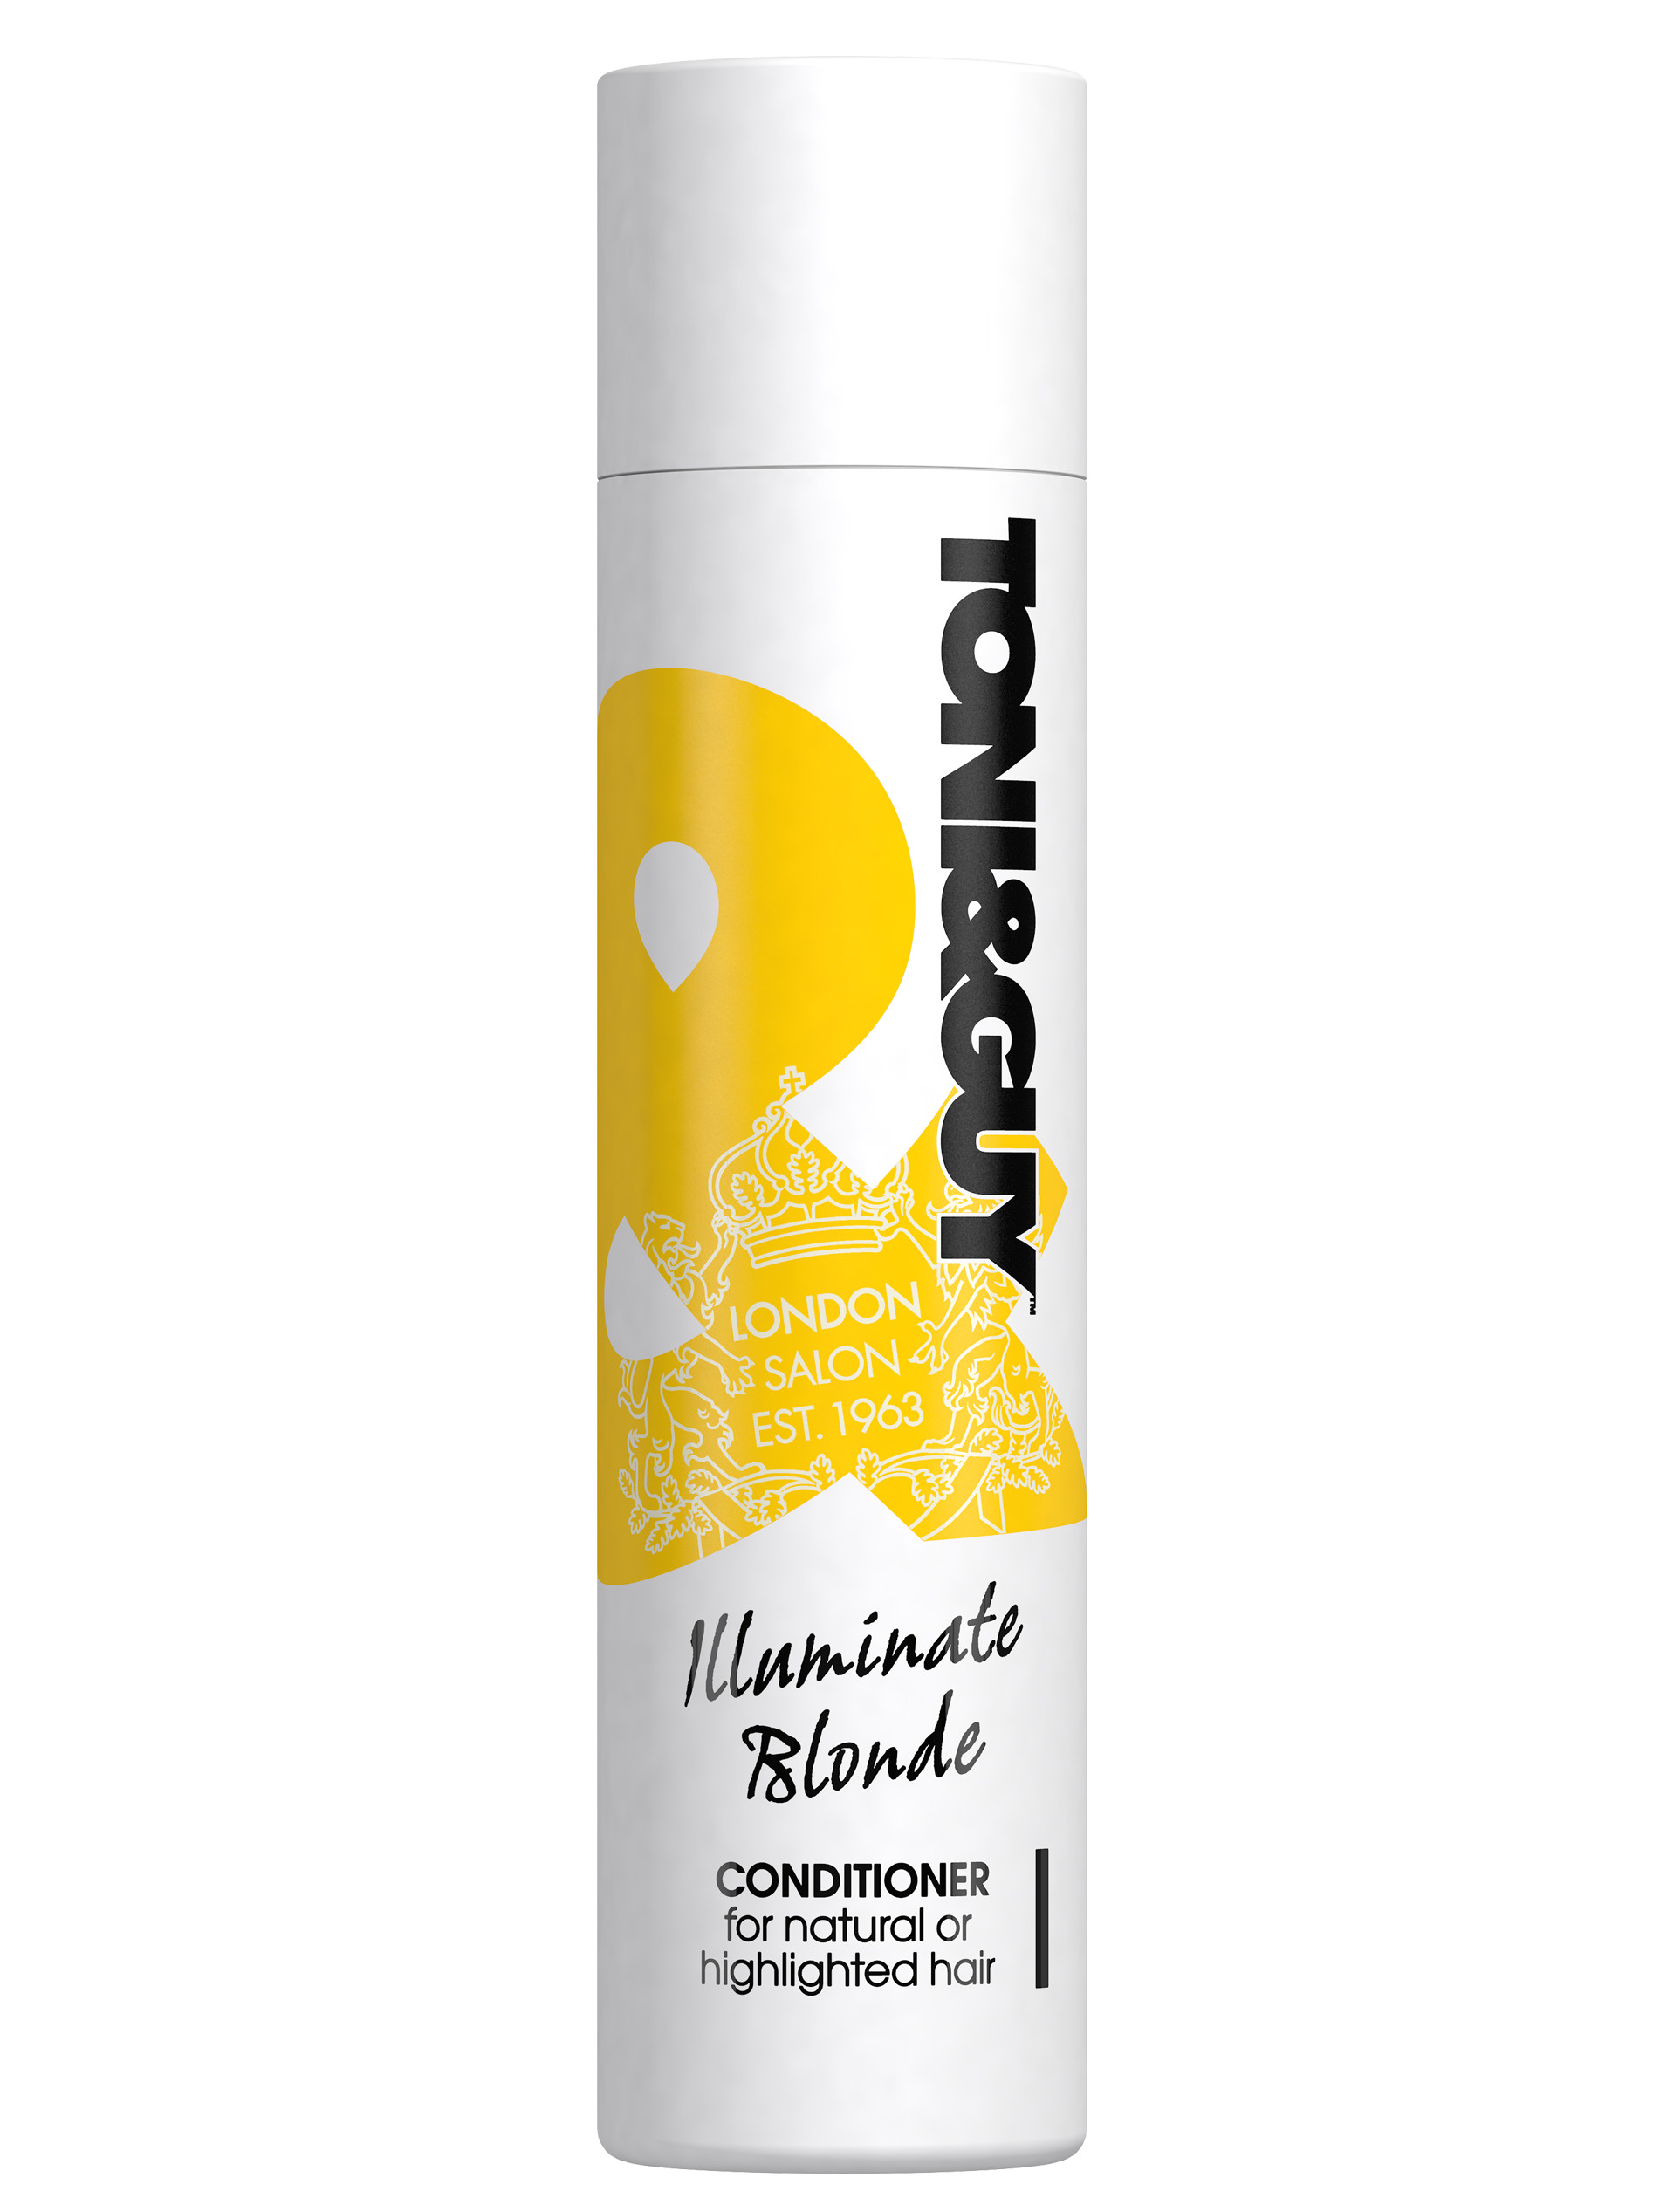 Kondicionér pro blond vlasy Toni a Guy Illuminate Blond - 250 ml (9192497, ULTG9206012) - Toni&Guy